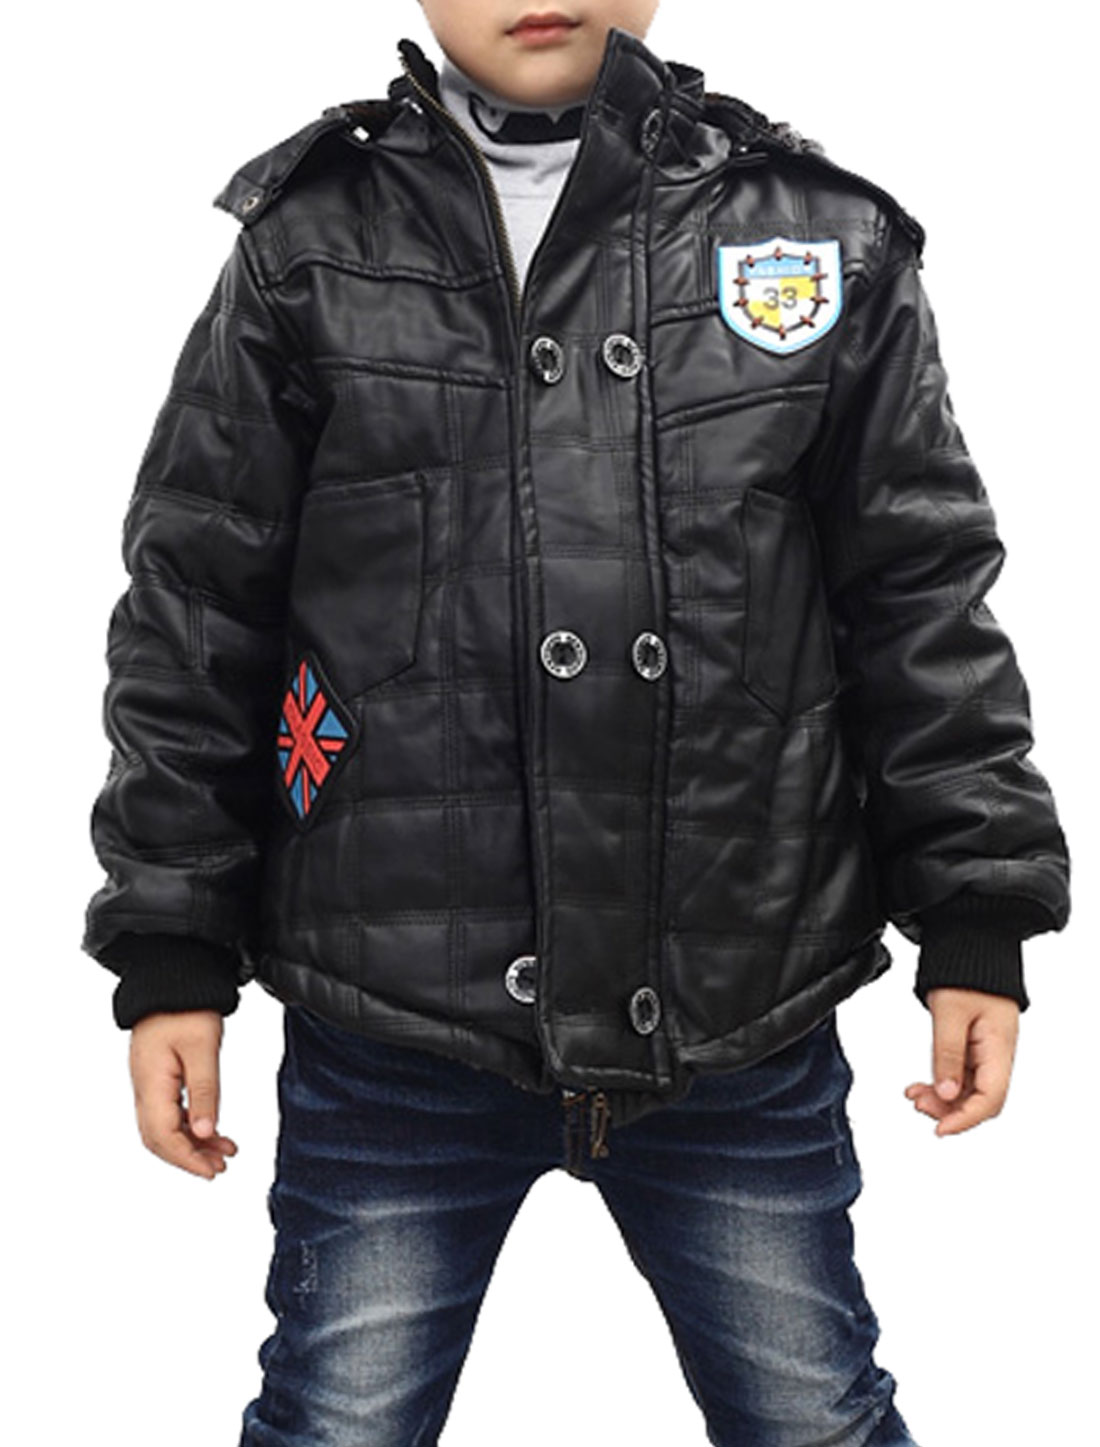 Black Color Long Sleeve Zip-Up Closure Faux Leather Jacket for Boys 6